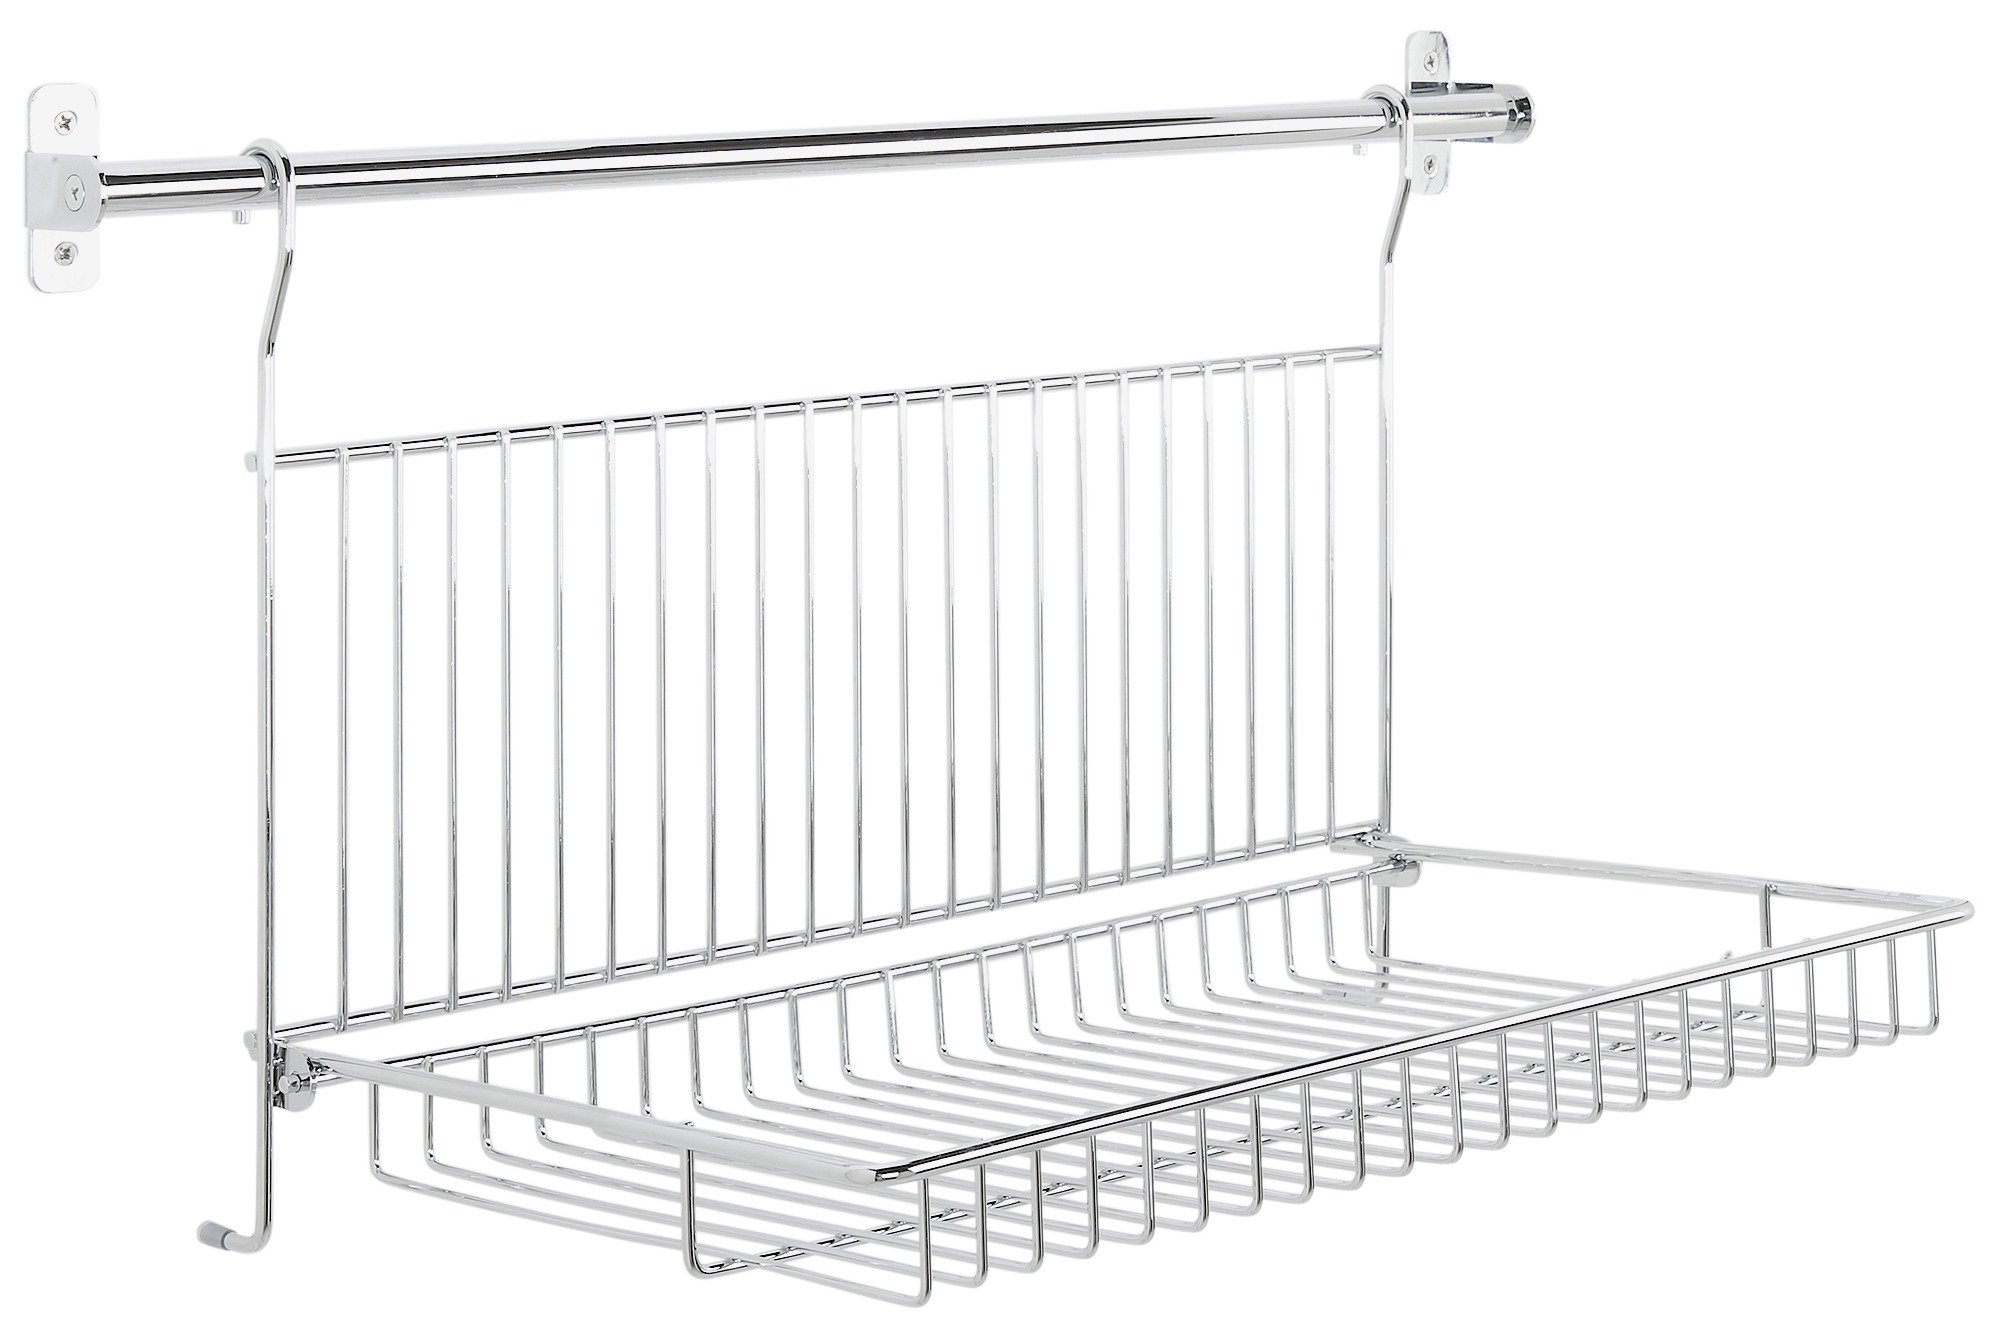 Racks Shelves And Stands Argos  sc 1 st  Cosmecol & Plate Rack Argos | Cosmecol